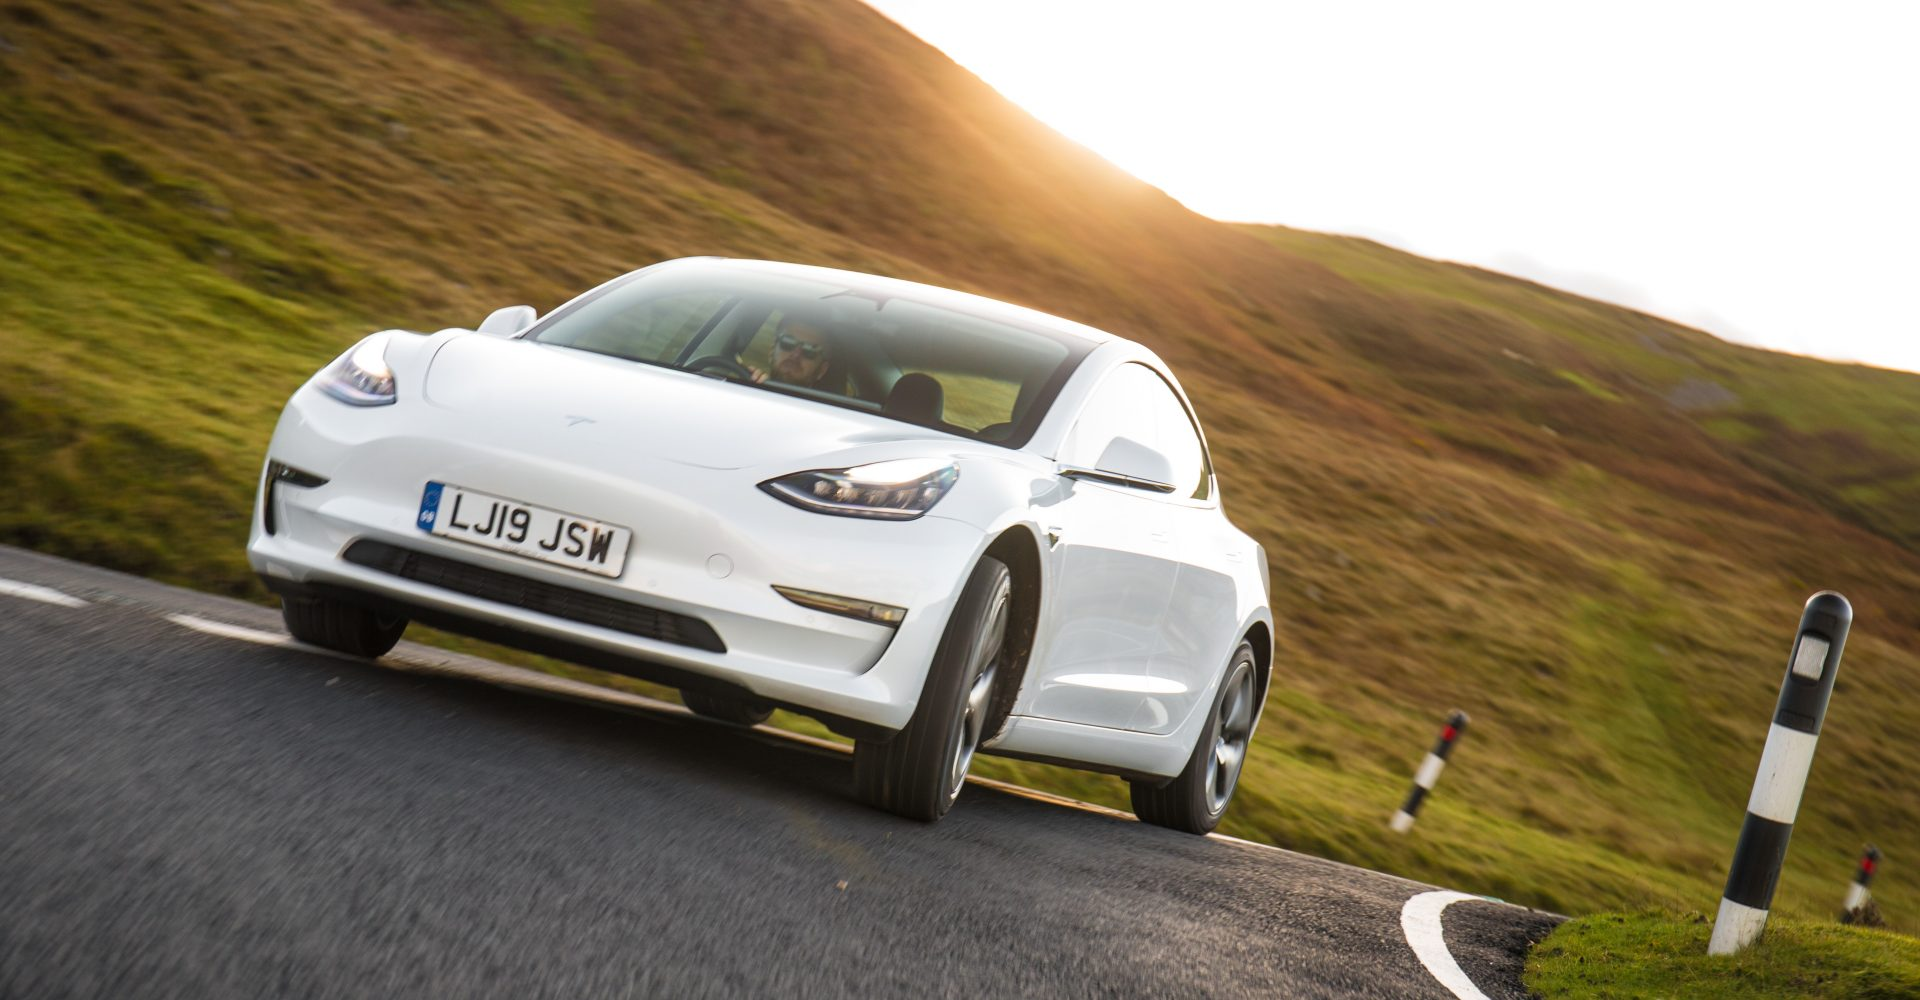 The Tesla Model 3 was the third best-selling car in Europe in December